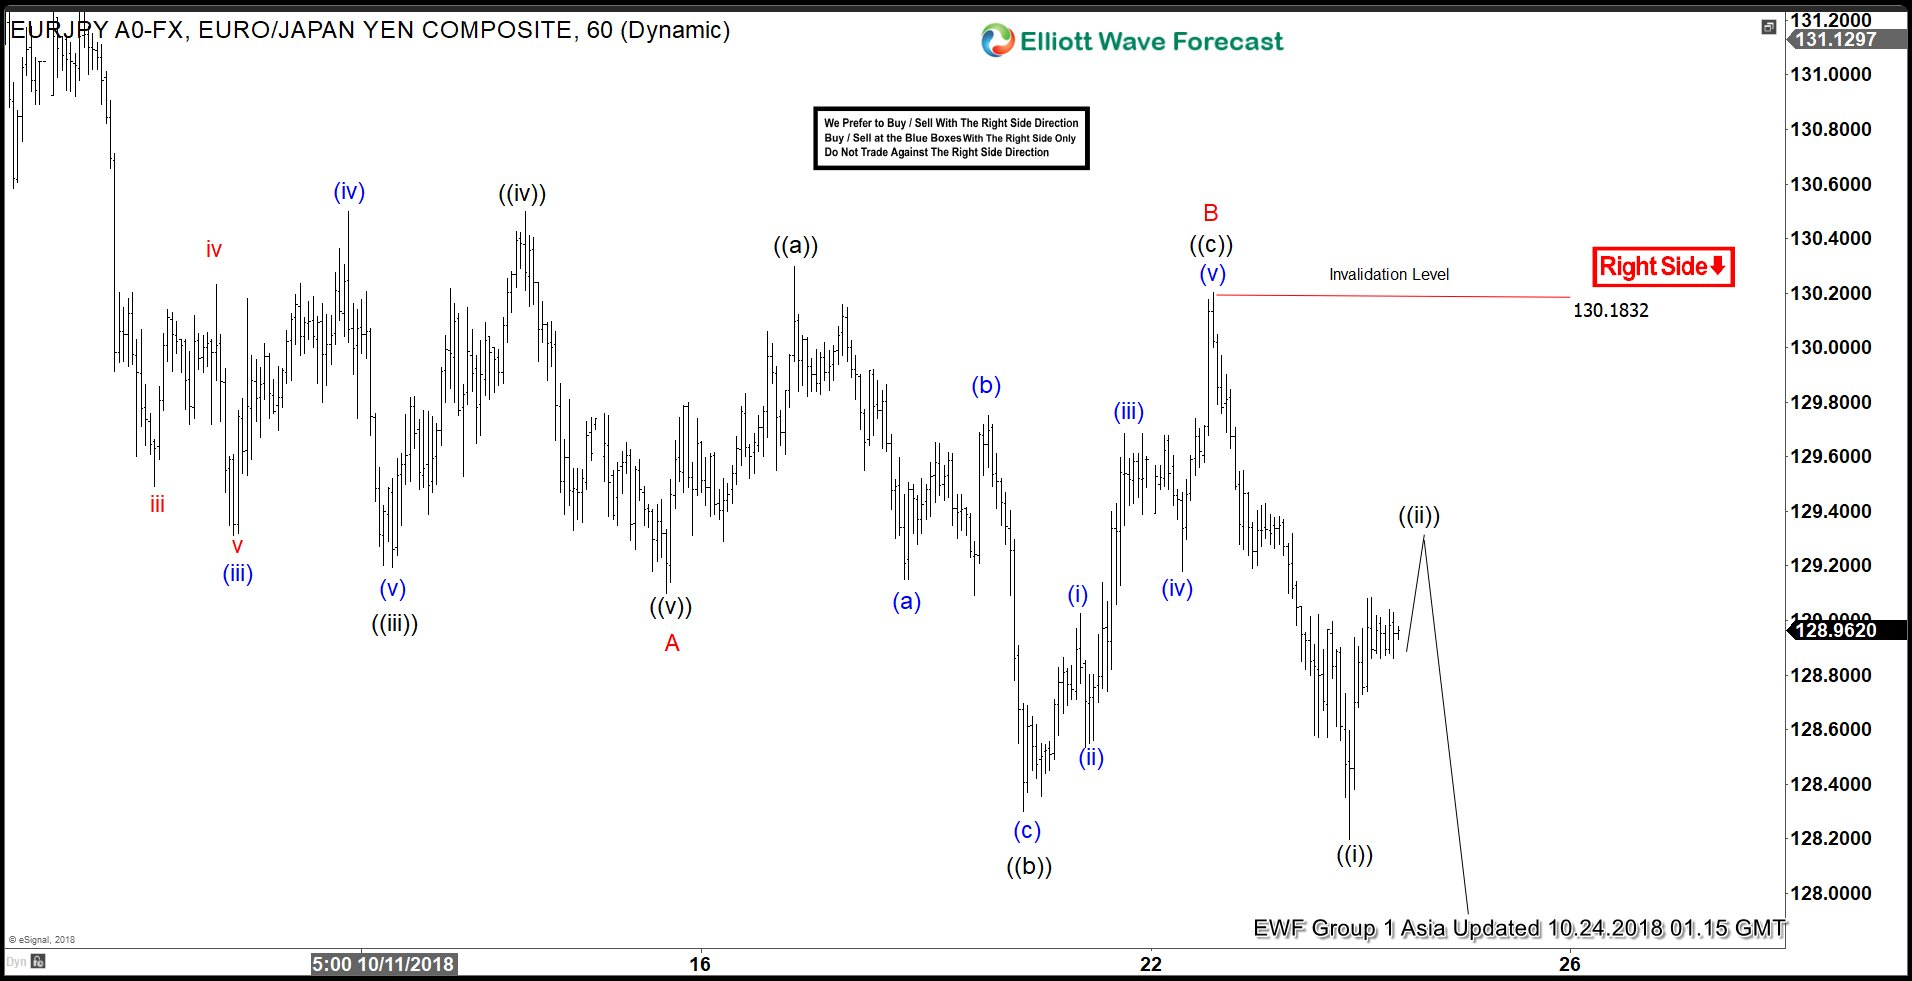 EURJPY Elliott Wave Analysis: More Downside Expected